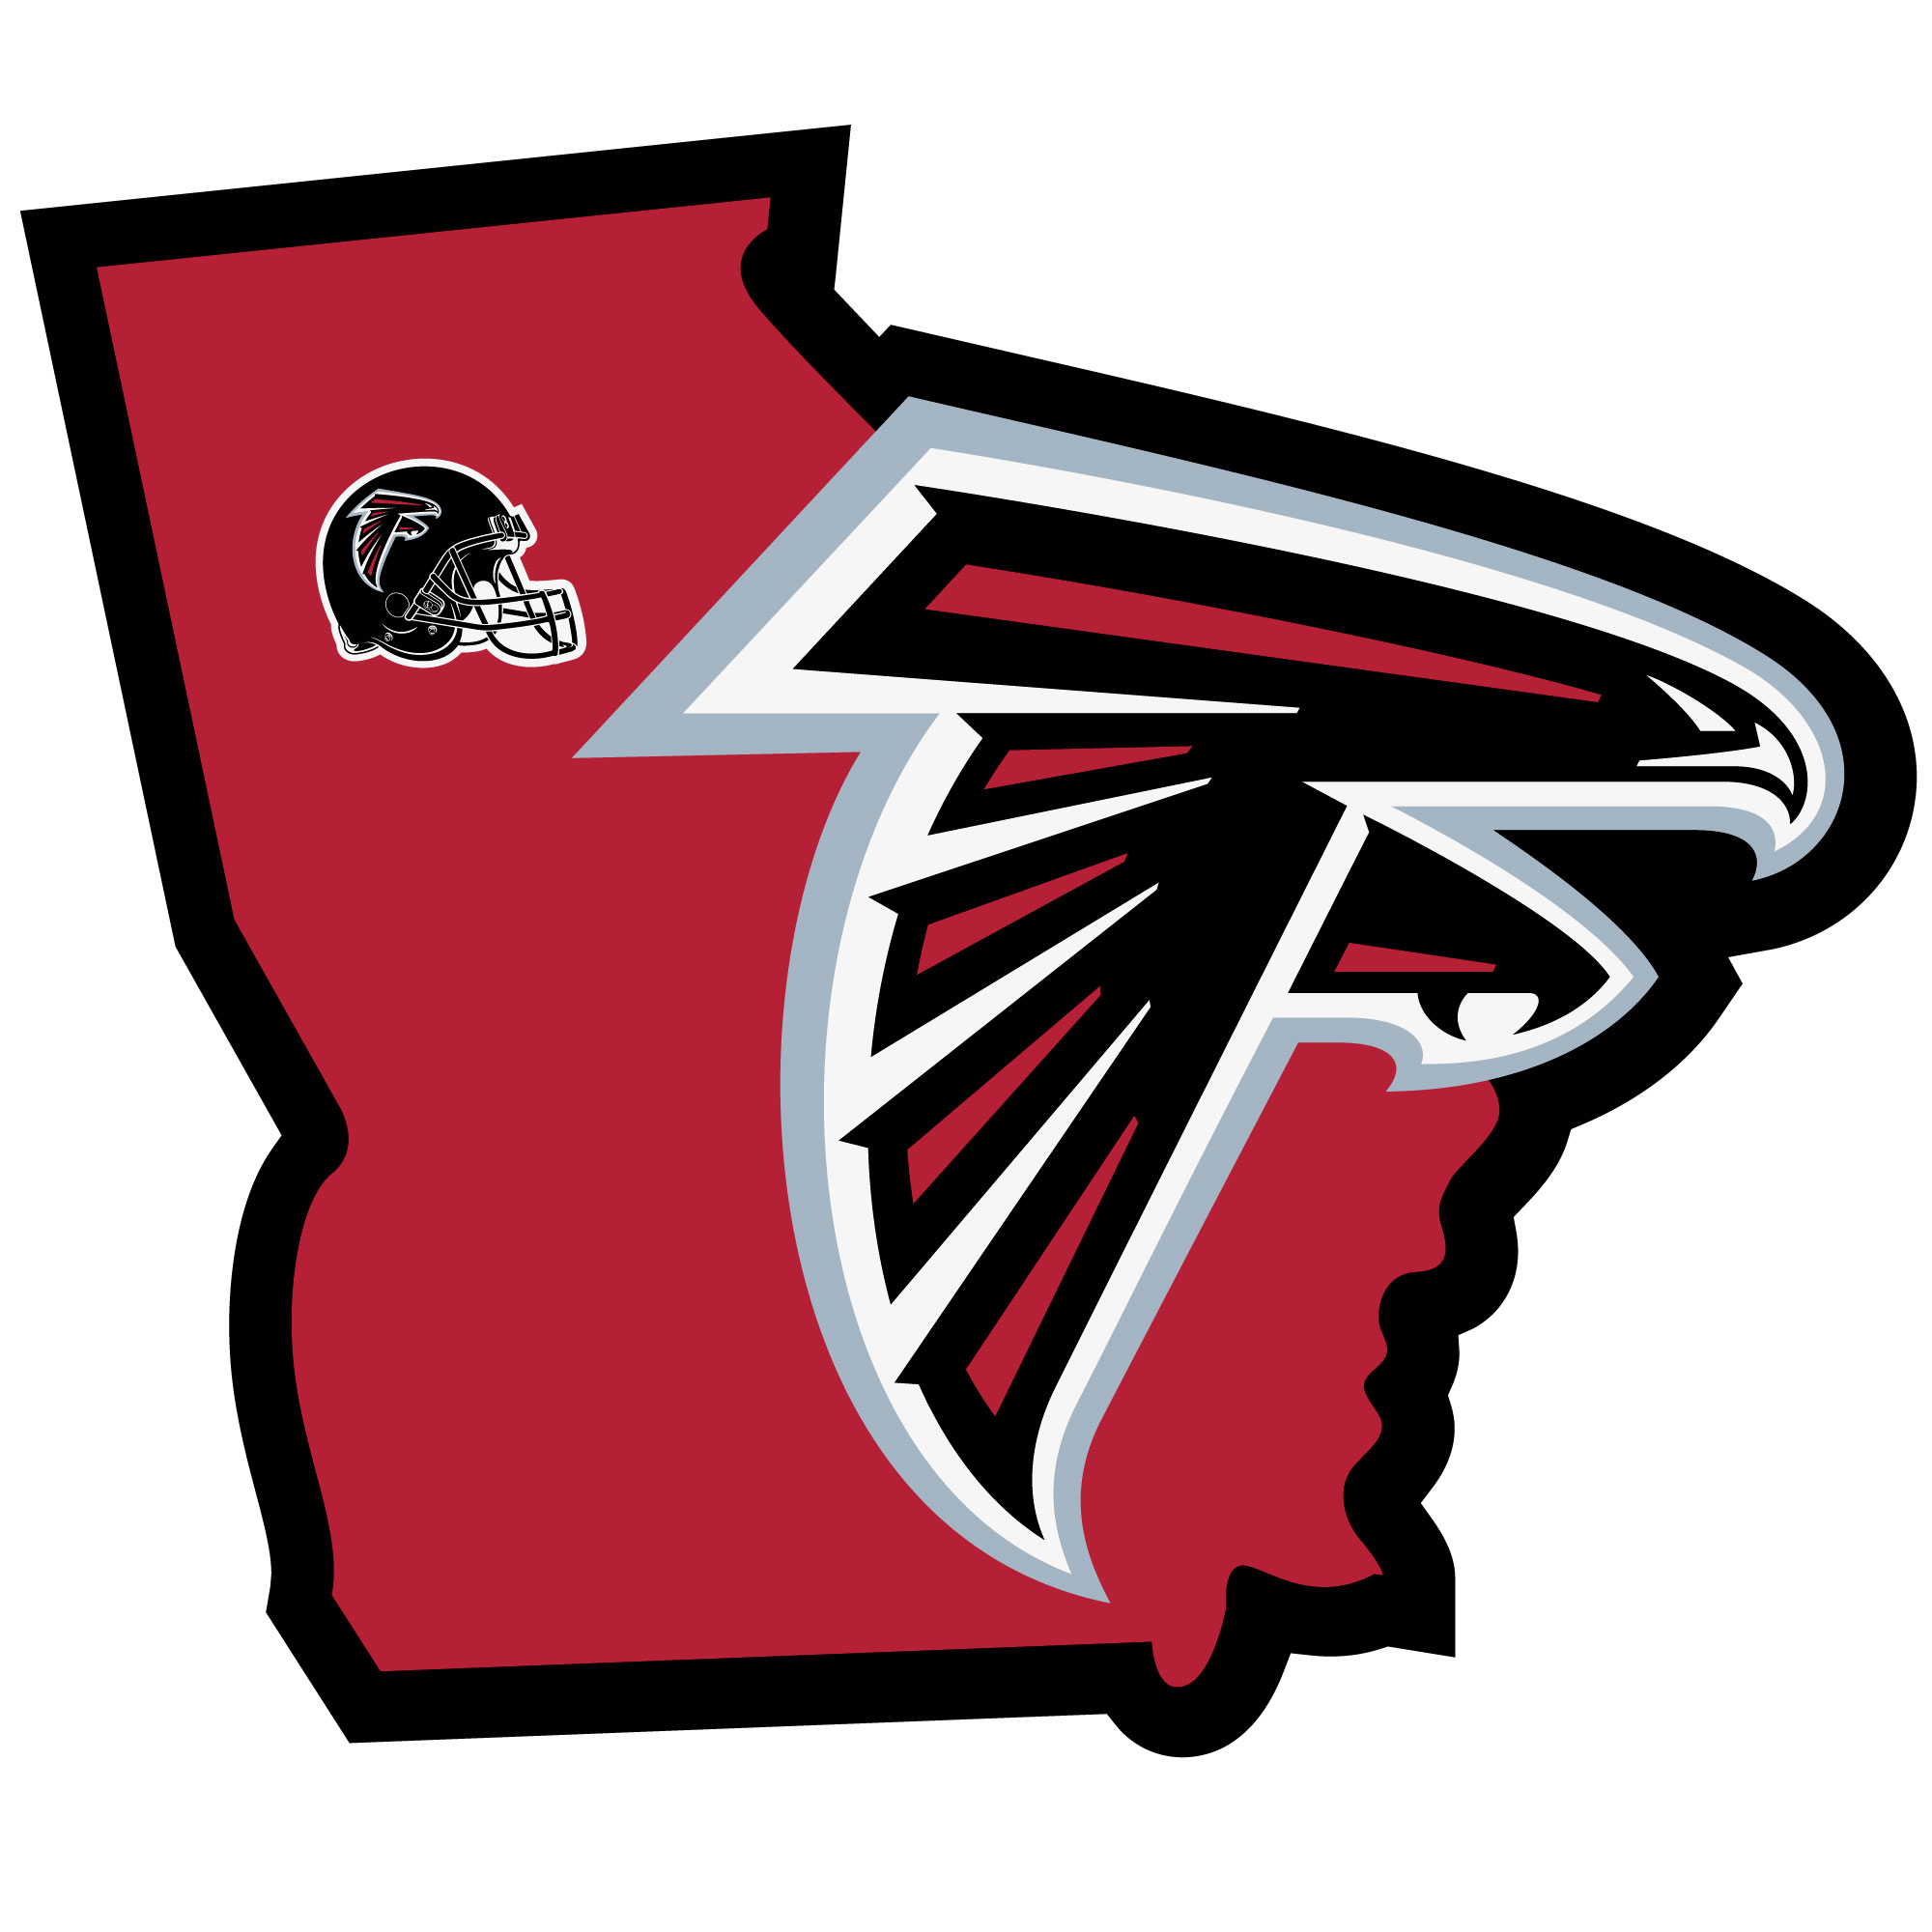 Atlanta Falcons Home State Decal - It's a home state decal with a sporty twist! This Atlanta Falcons decal feature the team logo over a silhouette of the state in team colors and a heart marking the home of the team. The decal is approximately 5 inches on repositionable vinyl.